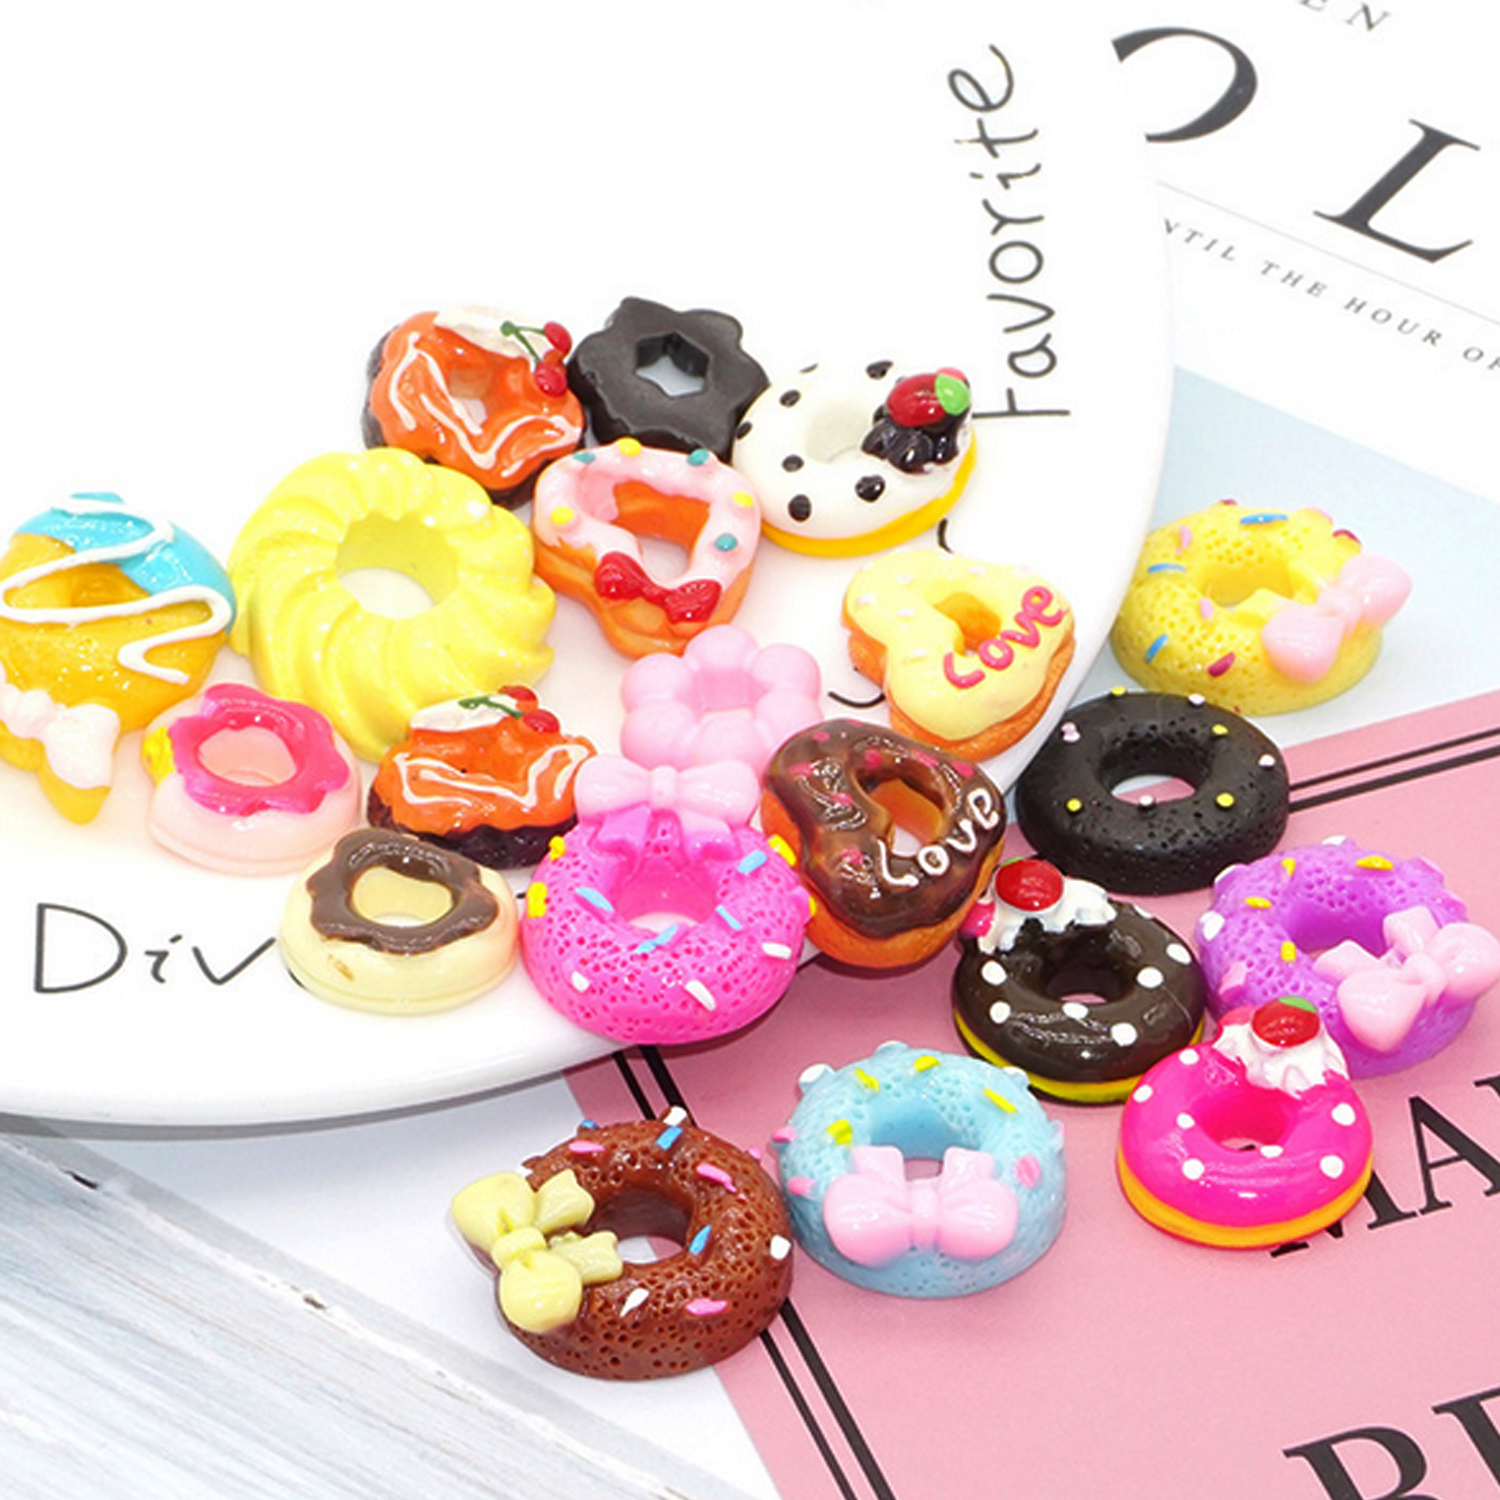 10PCS Cute Mini Resin Doll Food Doughnut Donut Bread Miniature Dollhouse Kitchen Furniture Accessories For Barbie Doll House Toy